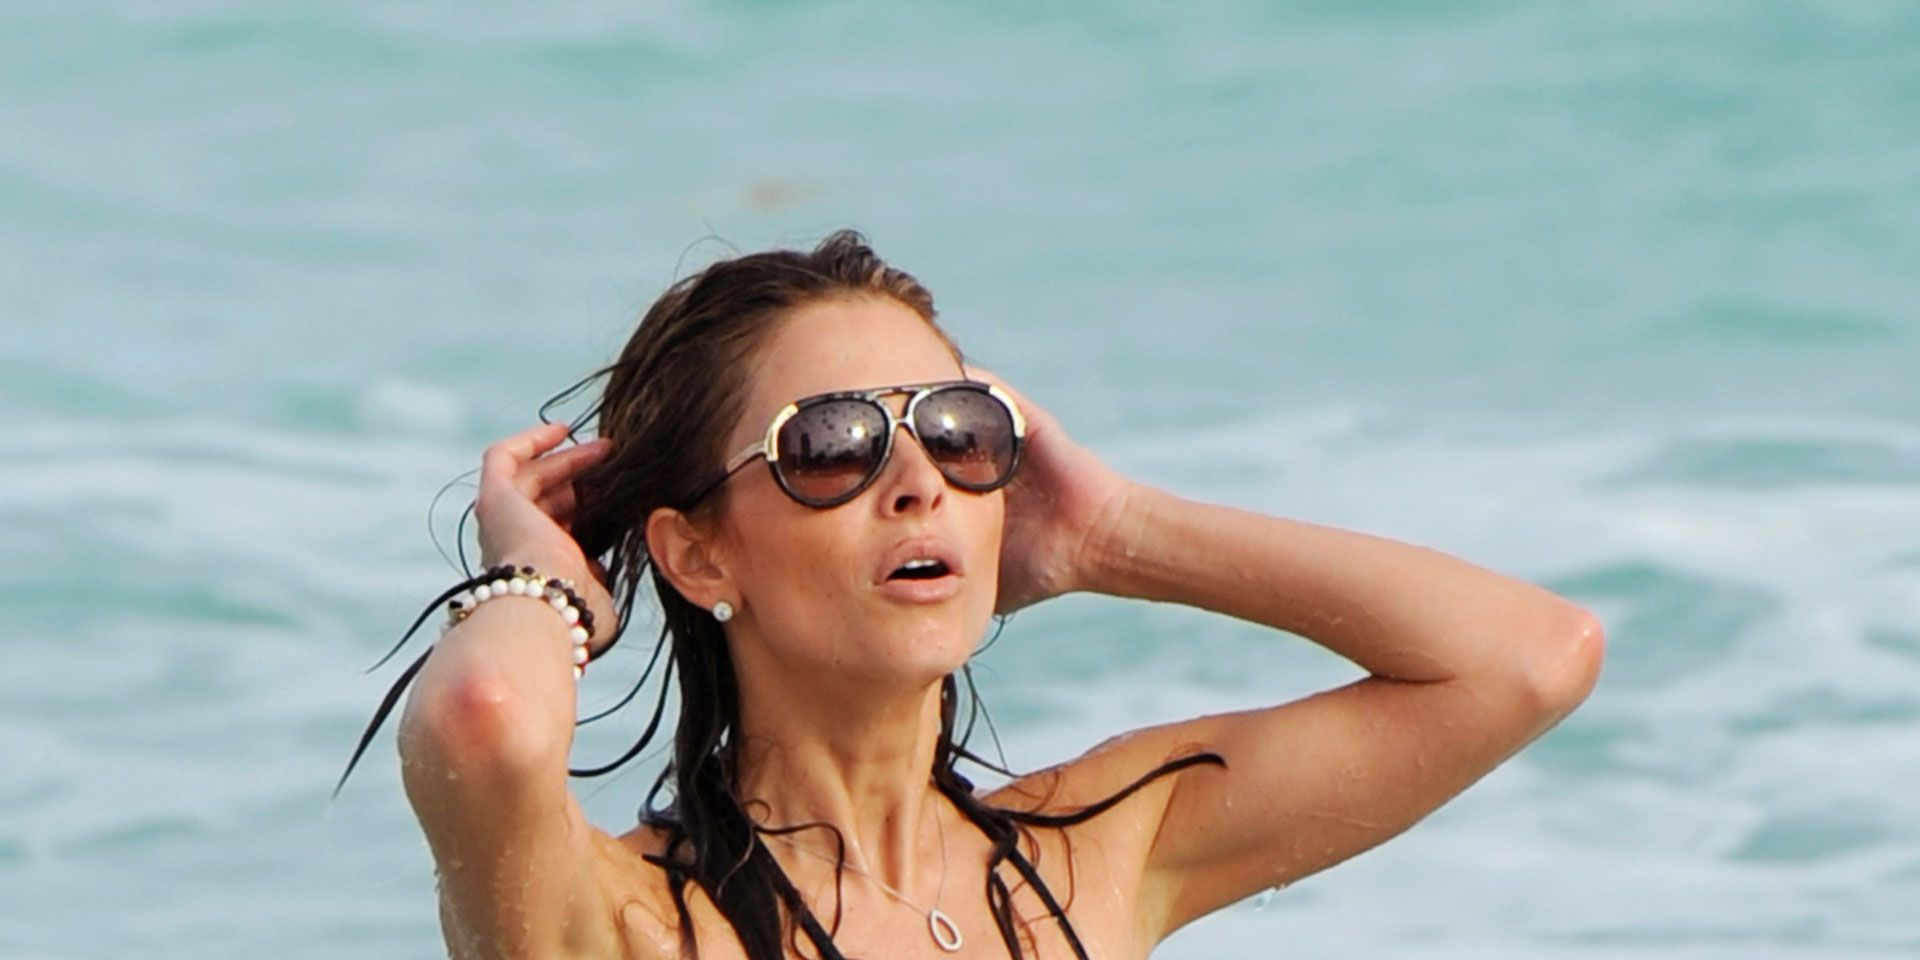 celebrity bikini bodies best celebrity beach bodies pictures